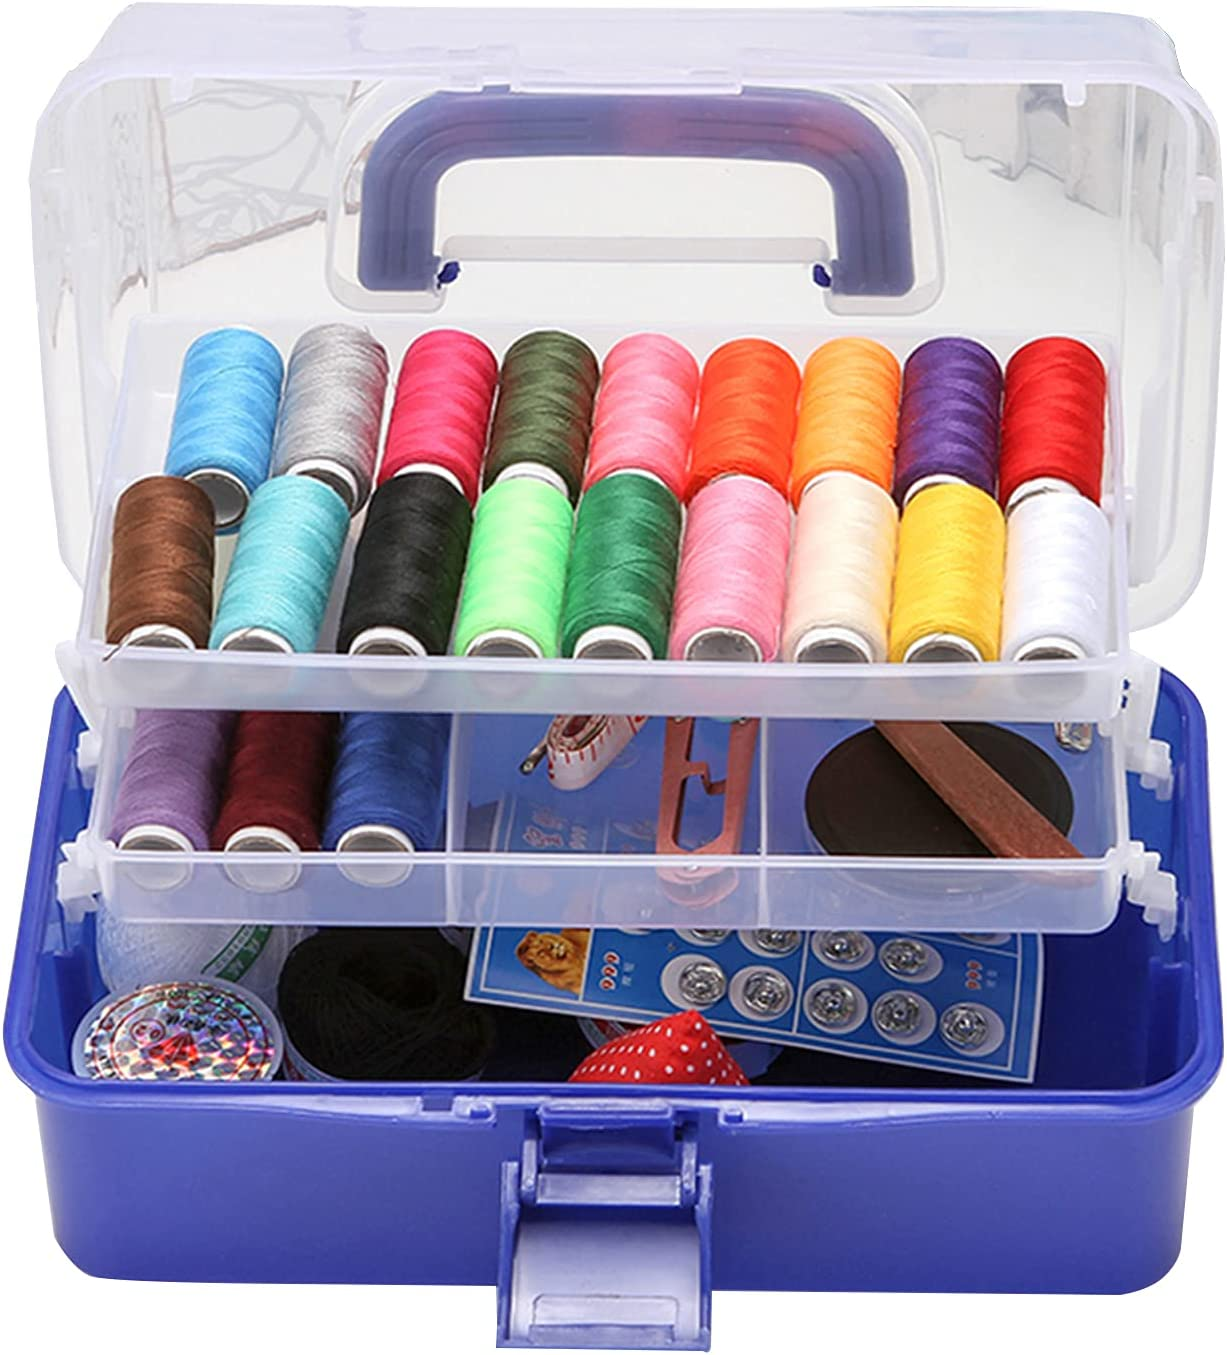 XBAOMING Sewing Tool Don't miss the campaign Latest item Basket Three-Layer Multifunctional Storage